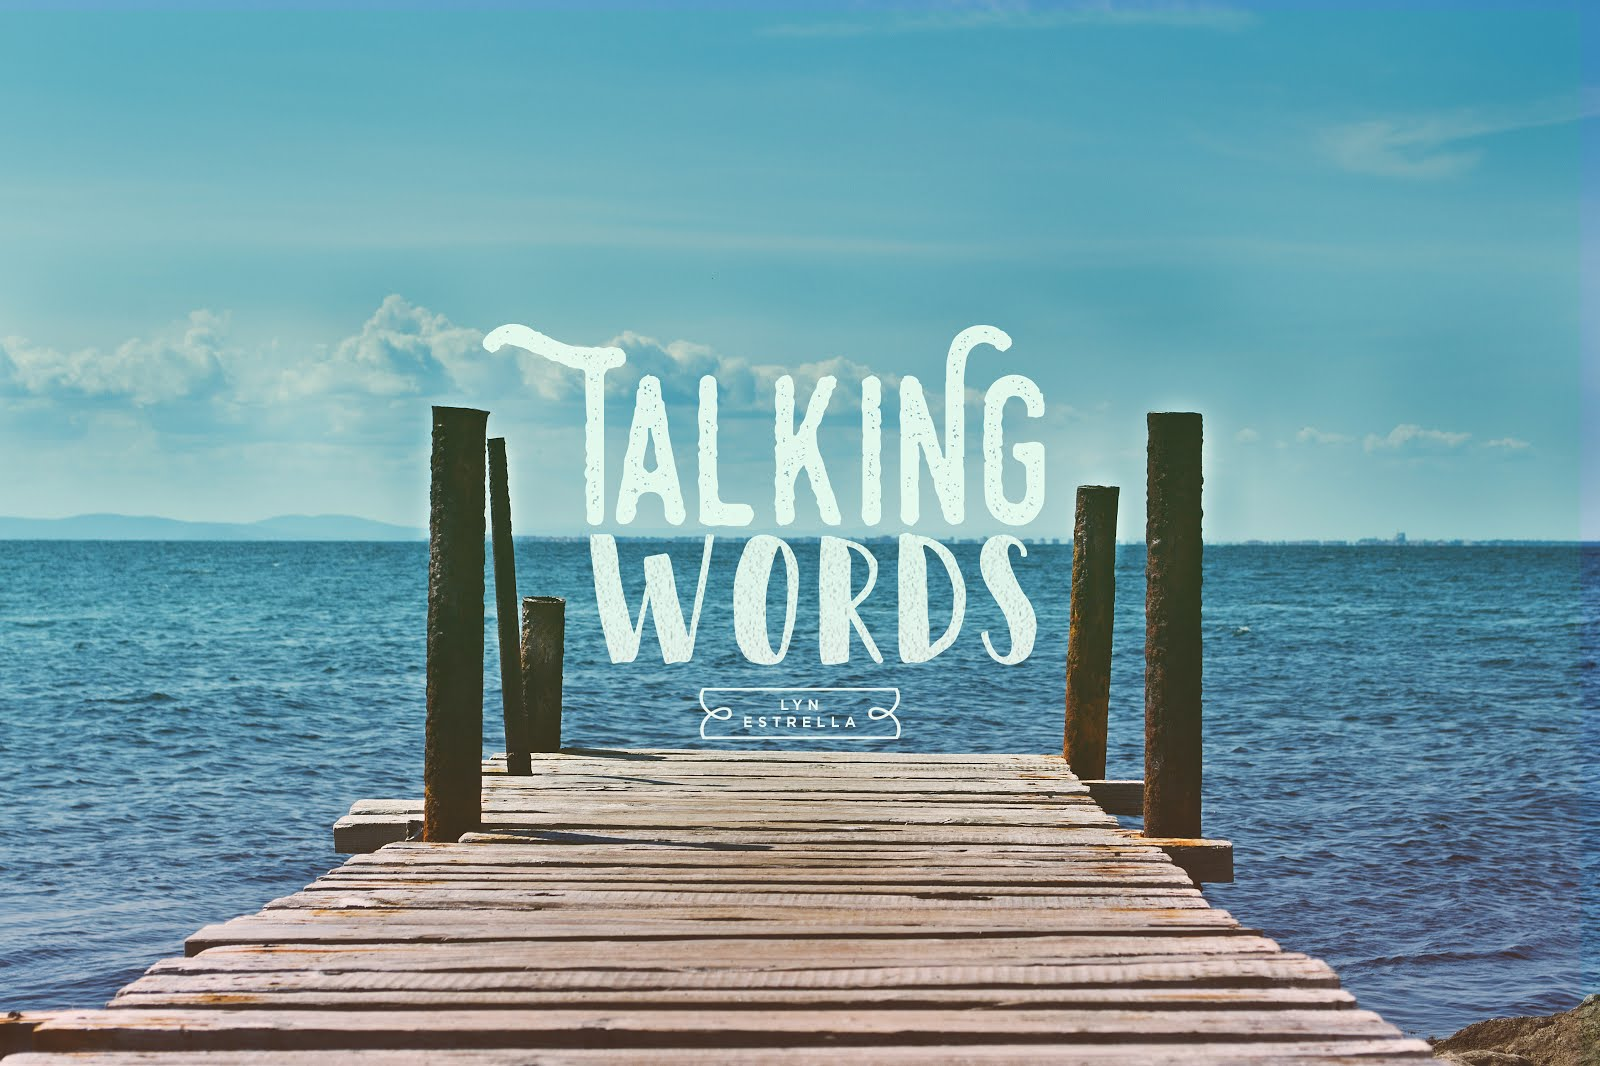 Talking Words